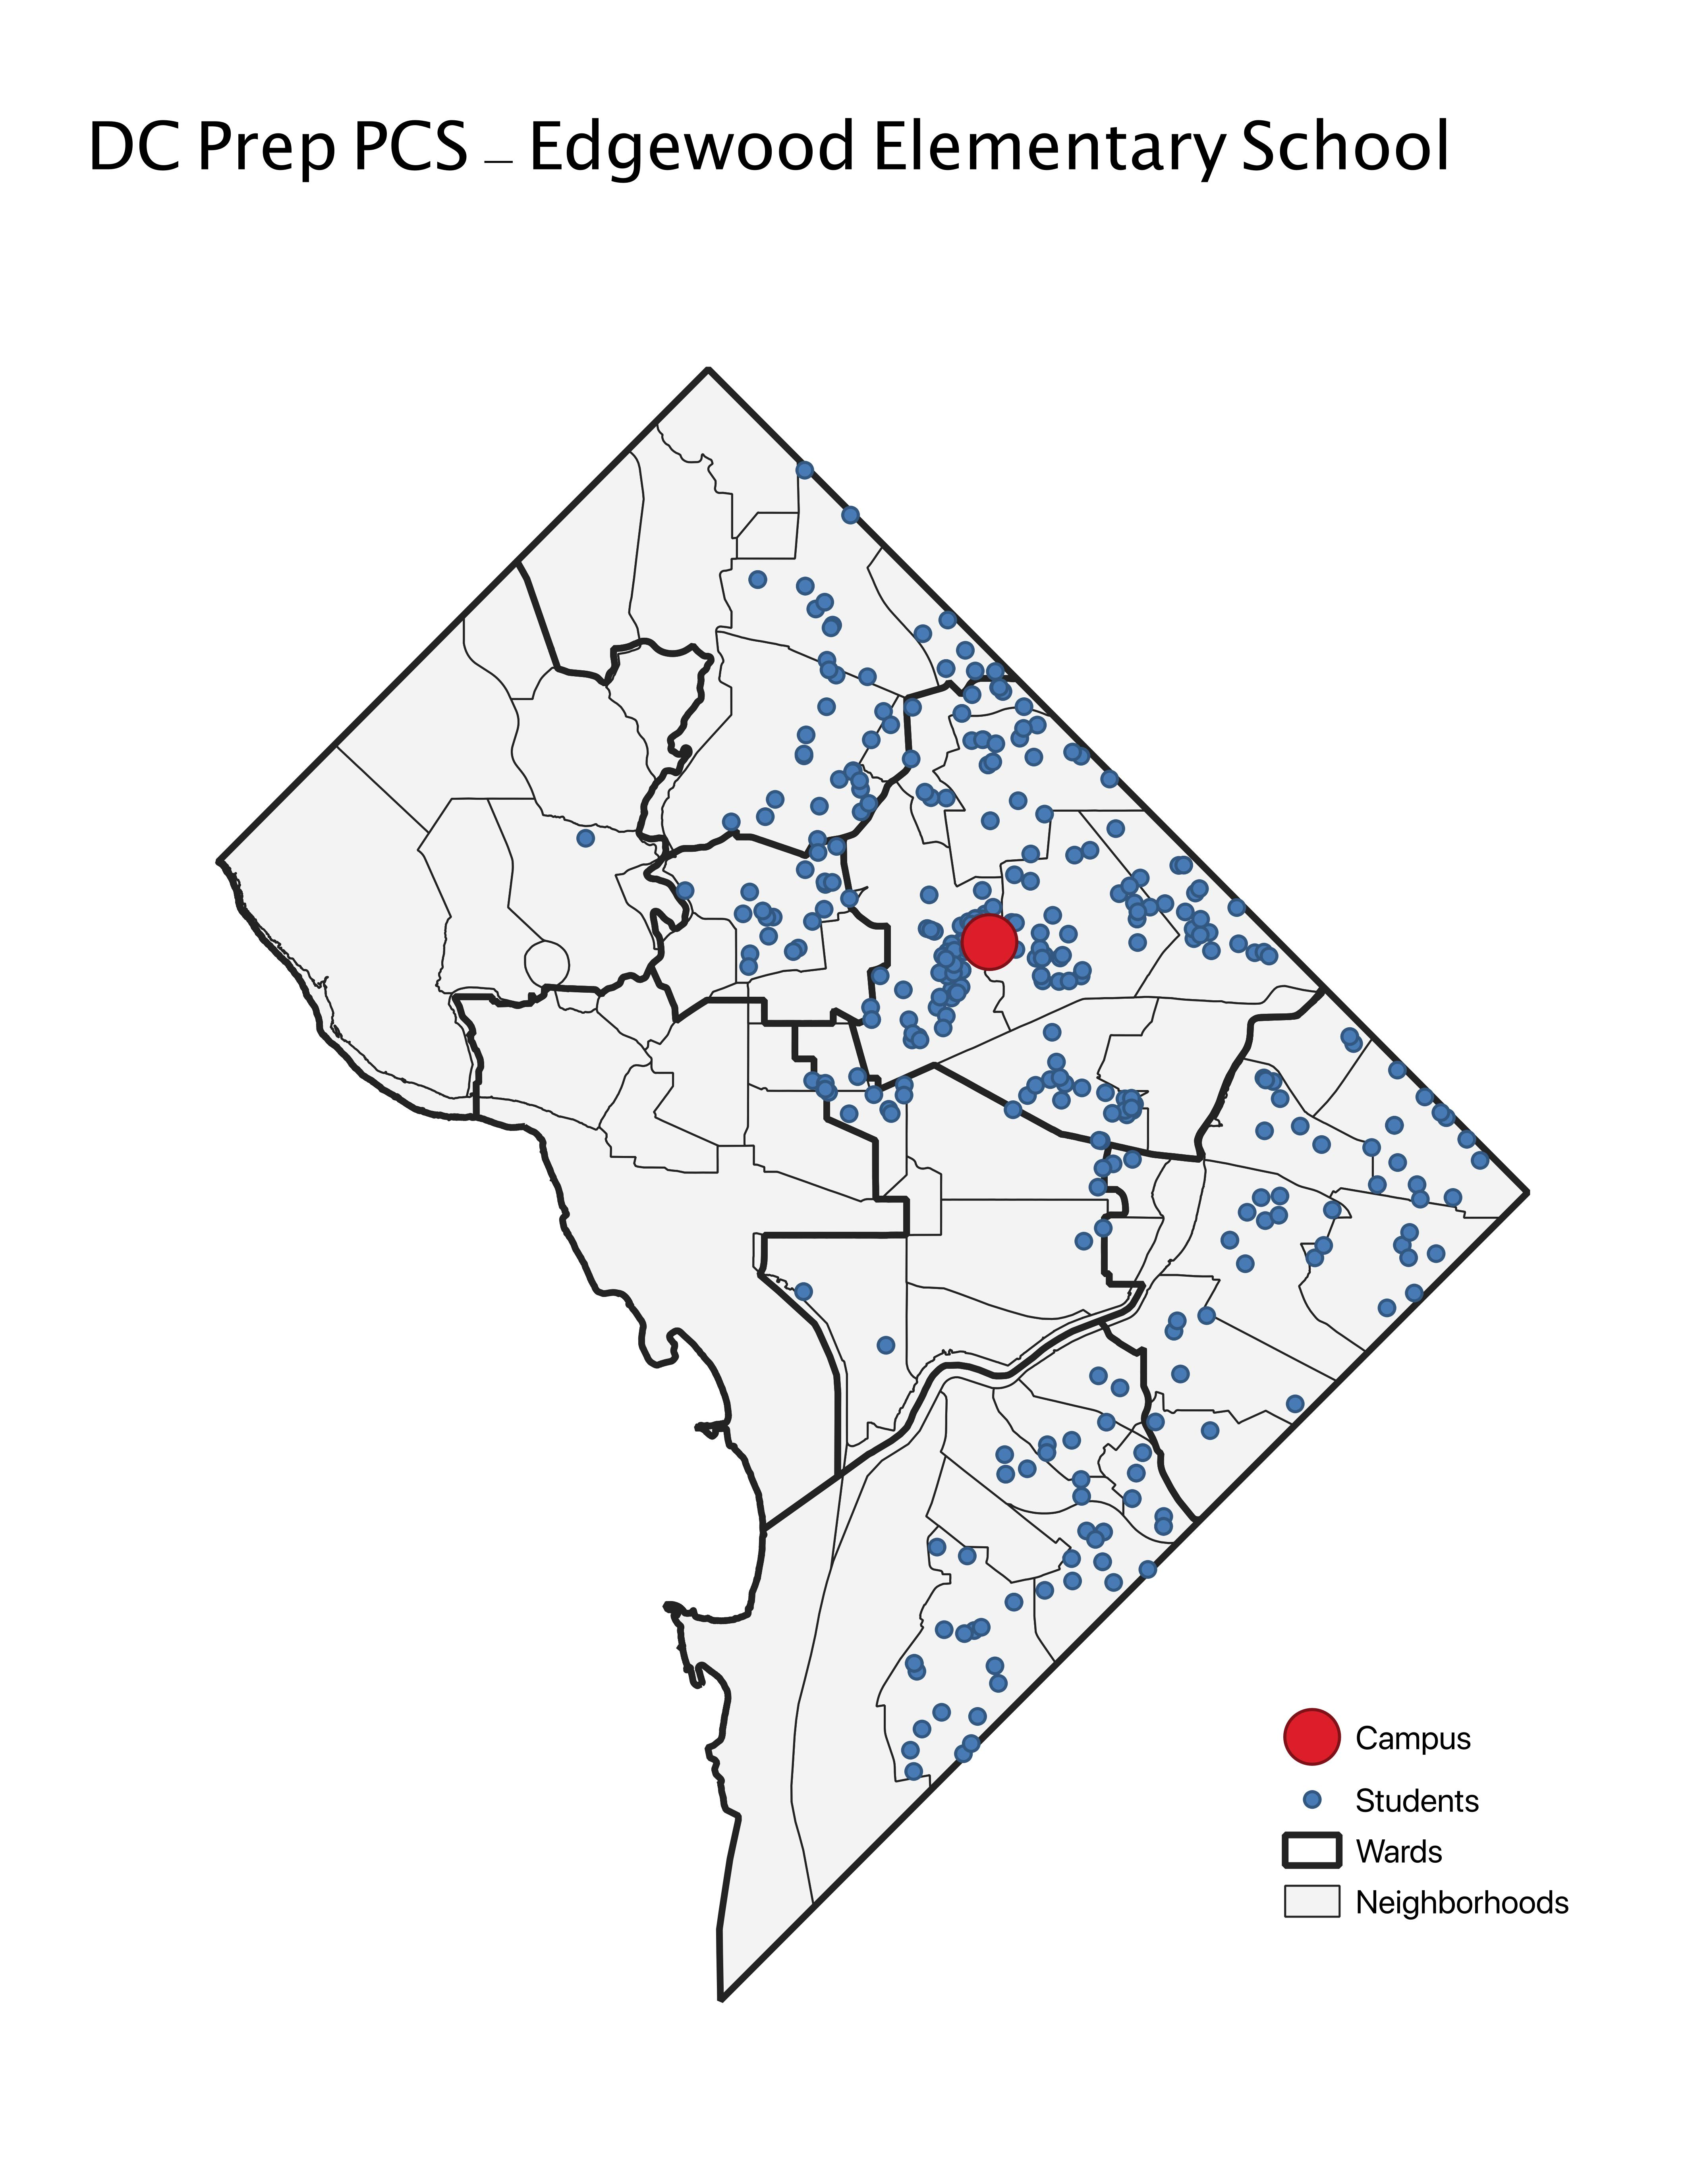 DC Prep PCS - Edgewood Elementary School 2019 Student Location Map.jpeg